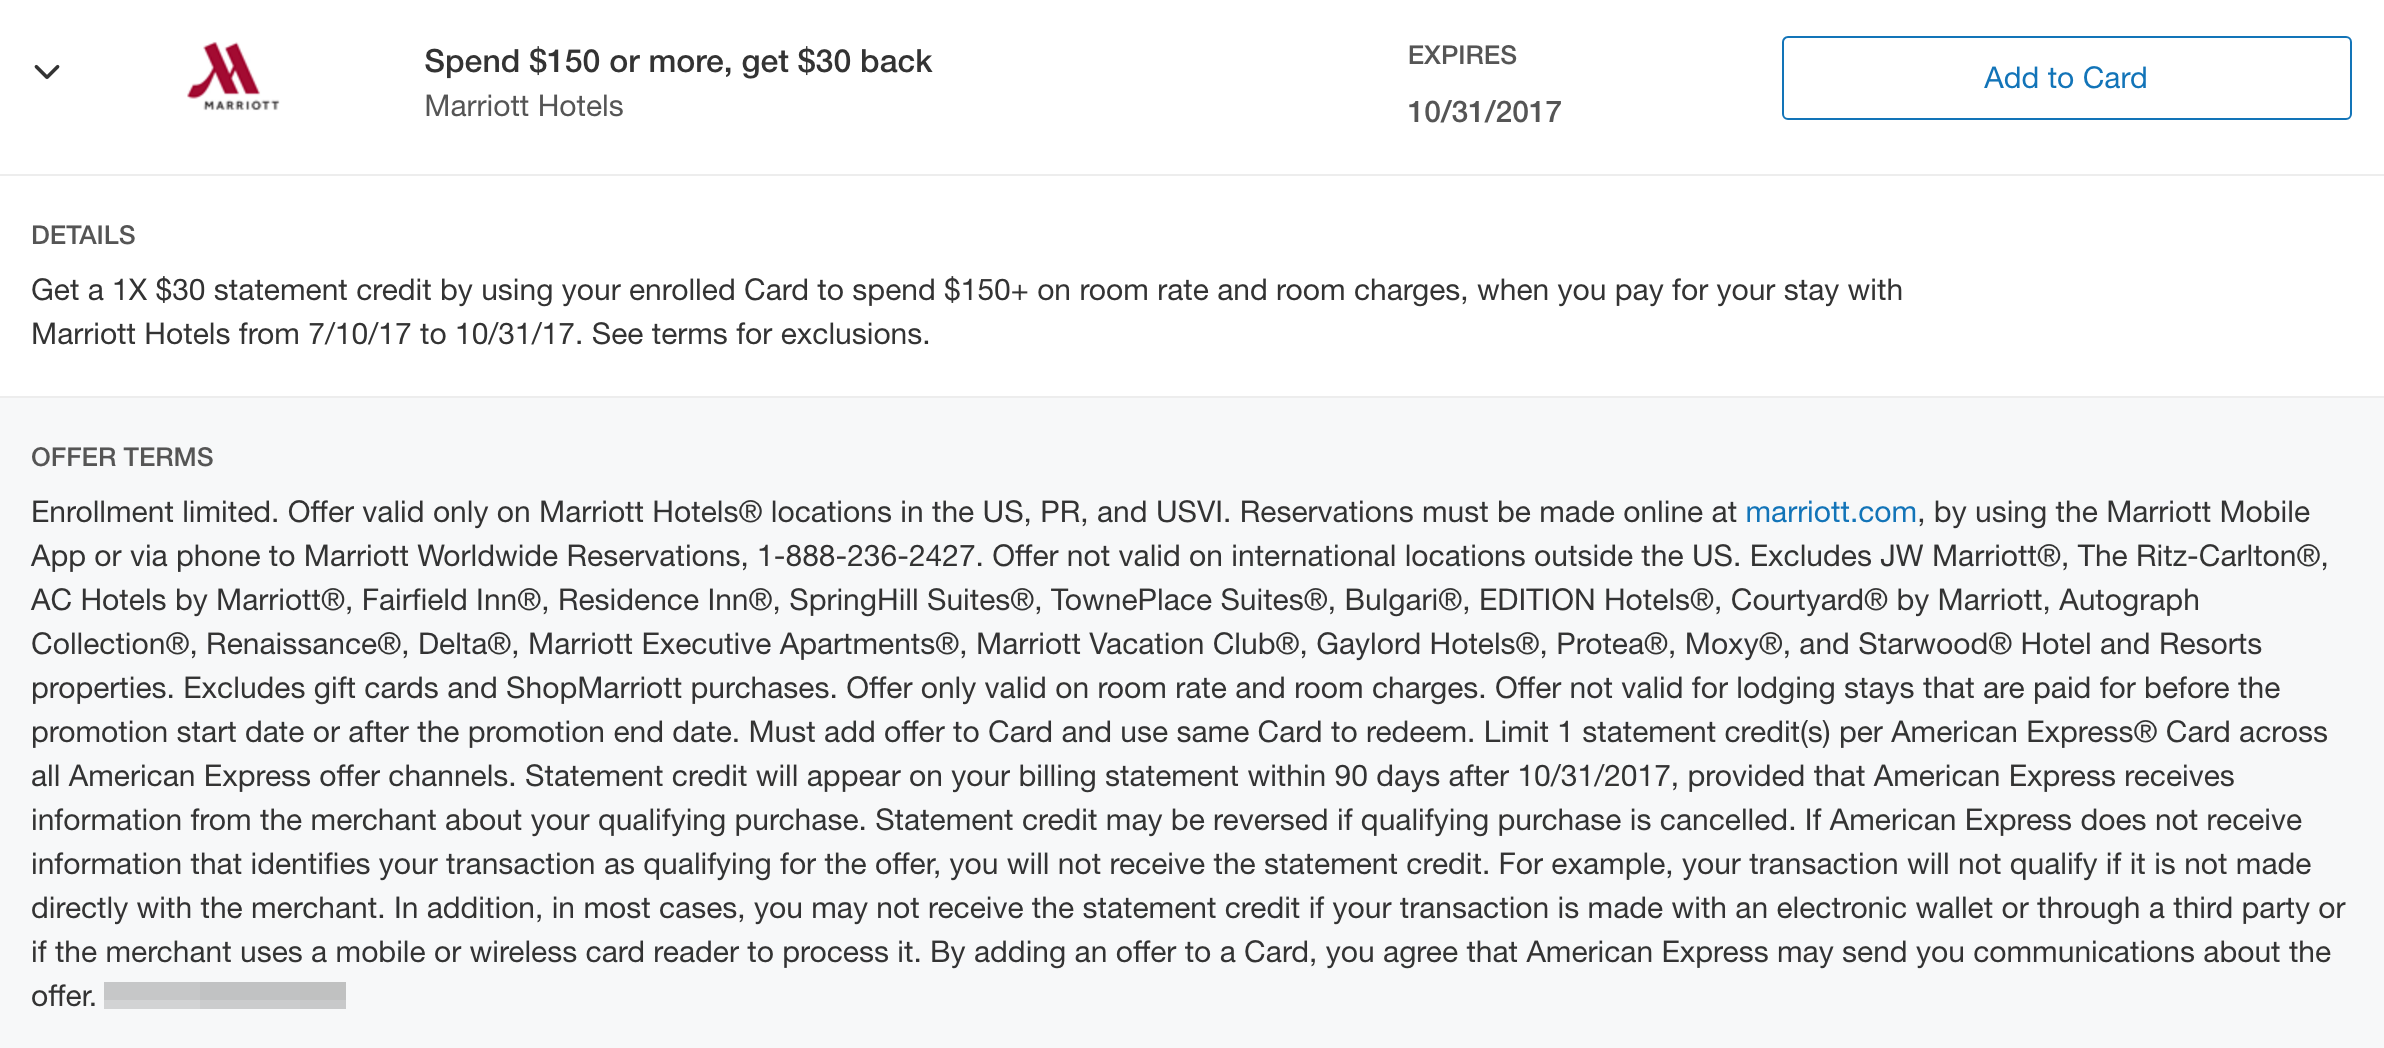 save $30 on a $150 marriott stay with amex offers